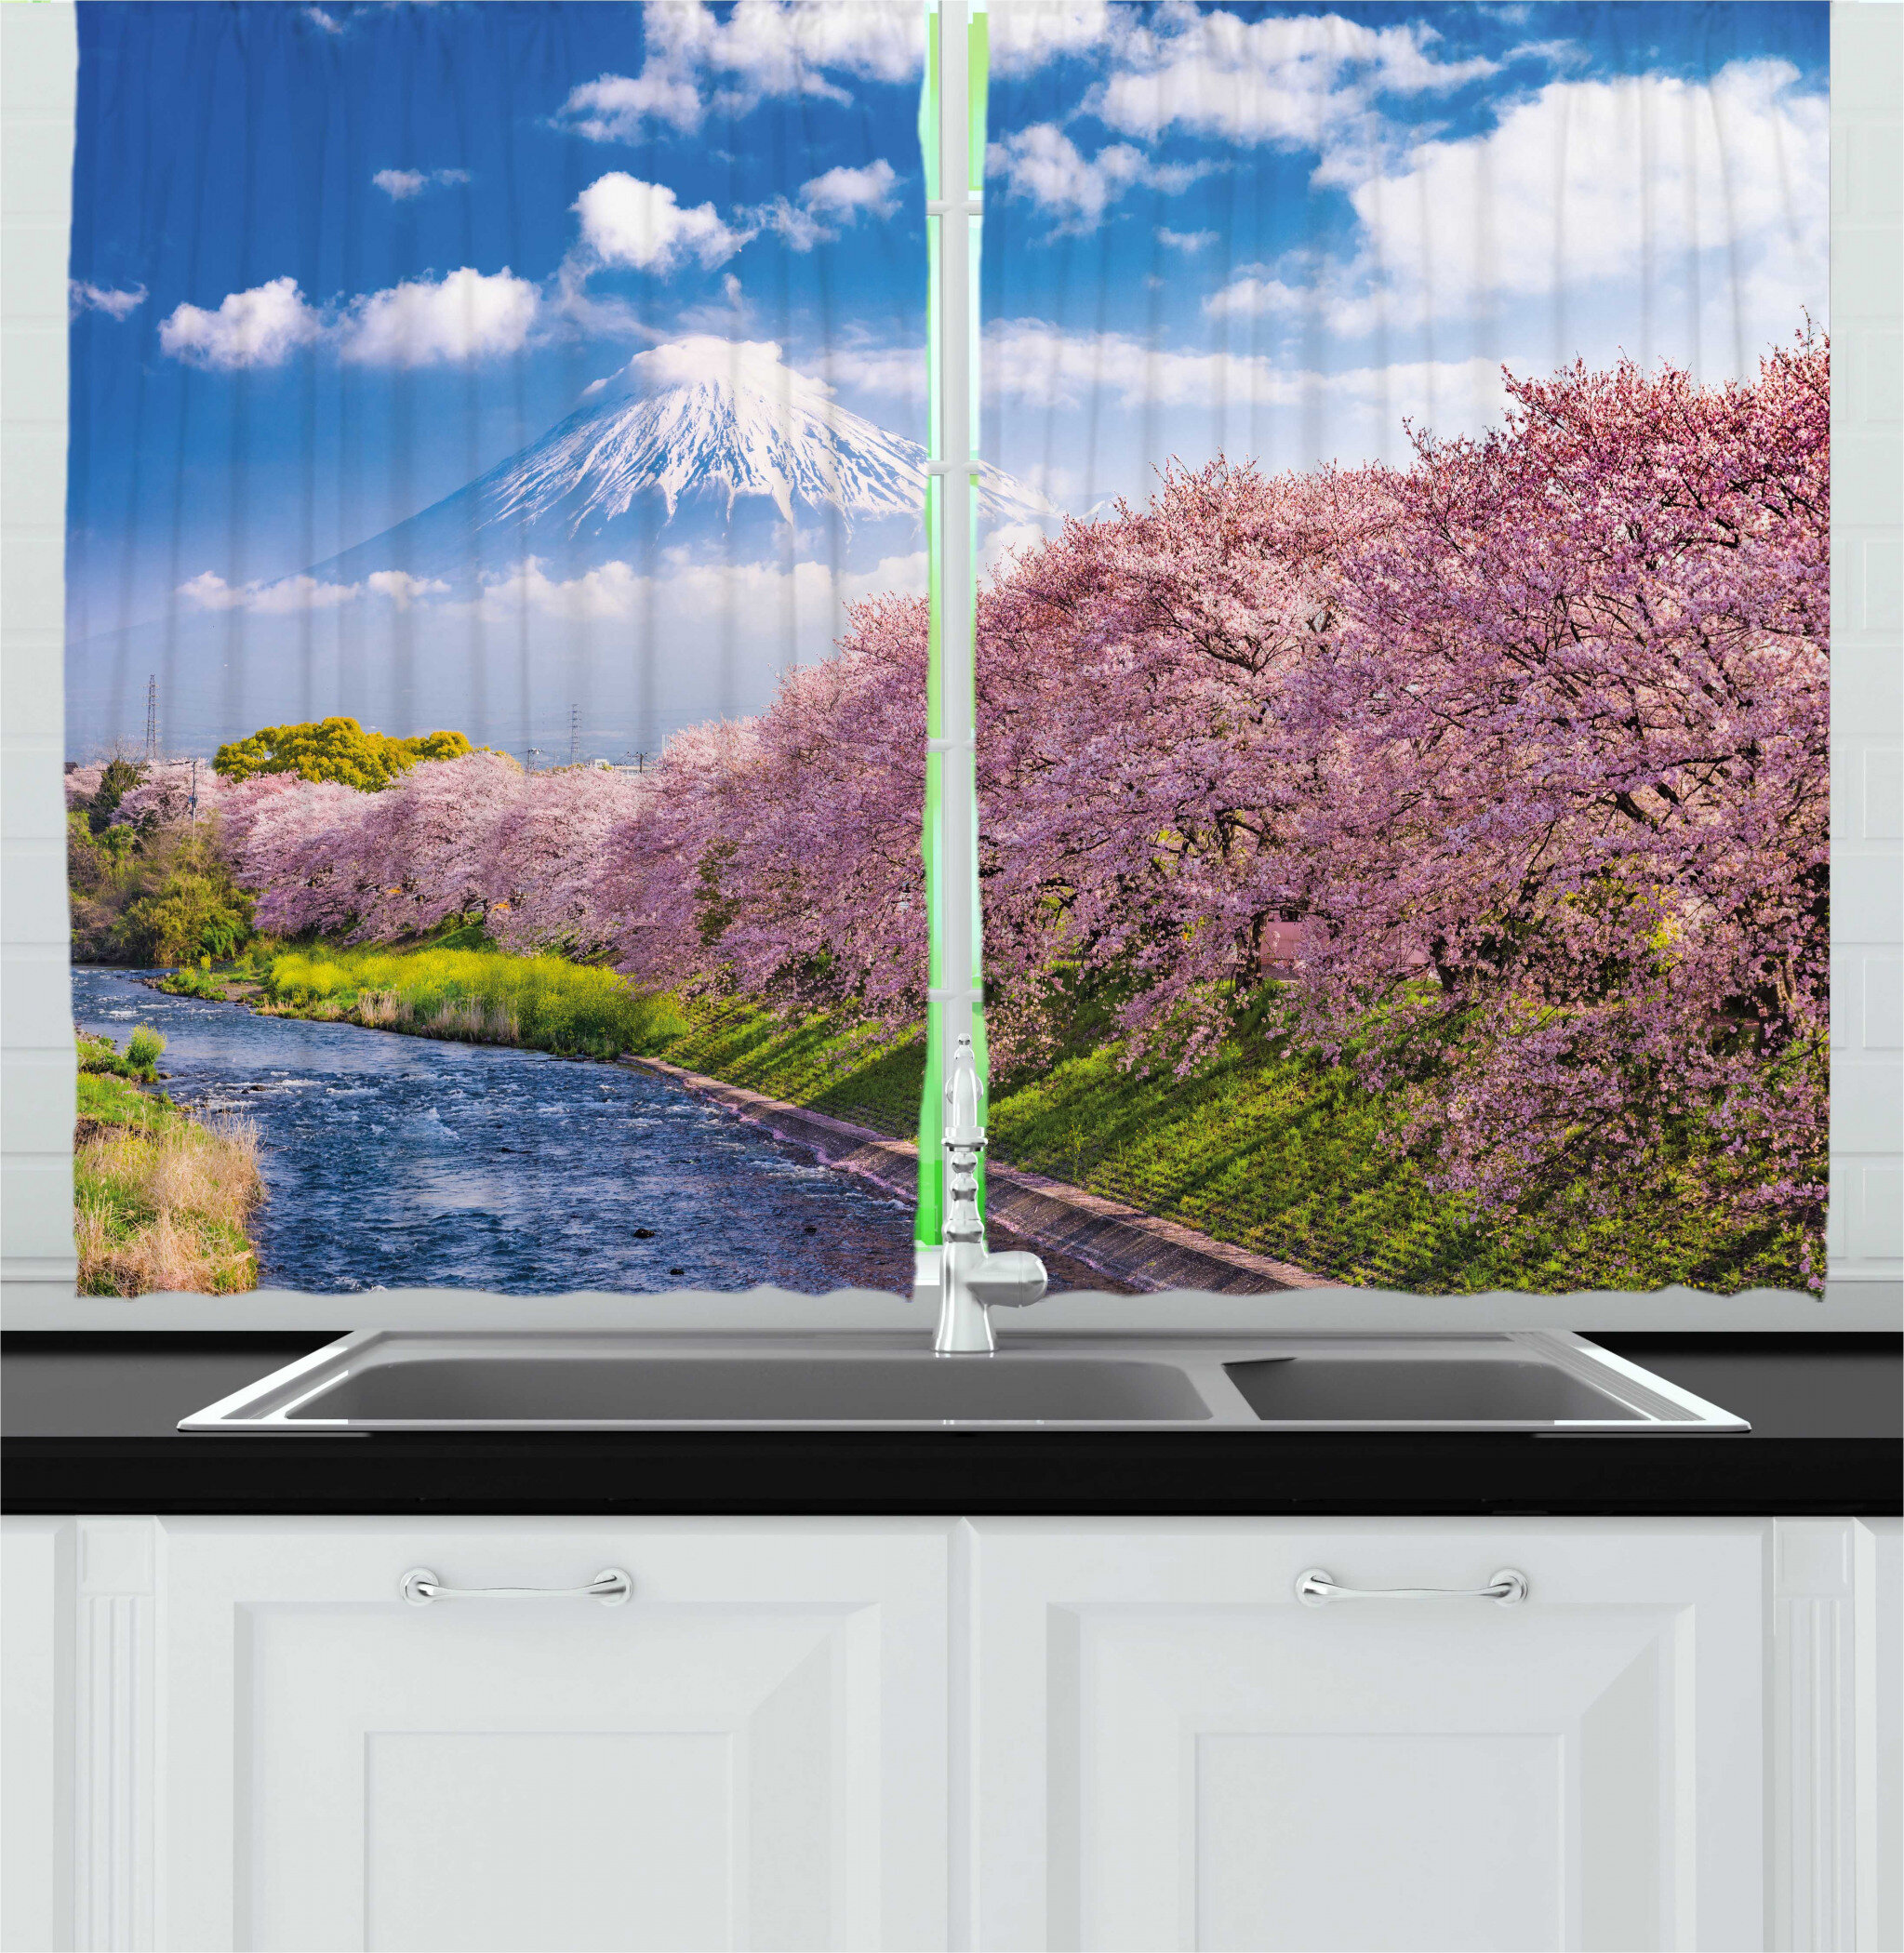 East Urban Home 2 Piece Ambesonne Mountain View Of River And Clear Sky With Cherry Blossoms Kitchen Curtain Set Wayfair